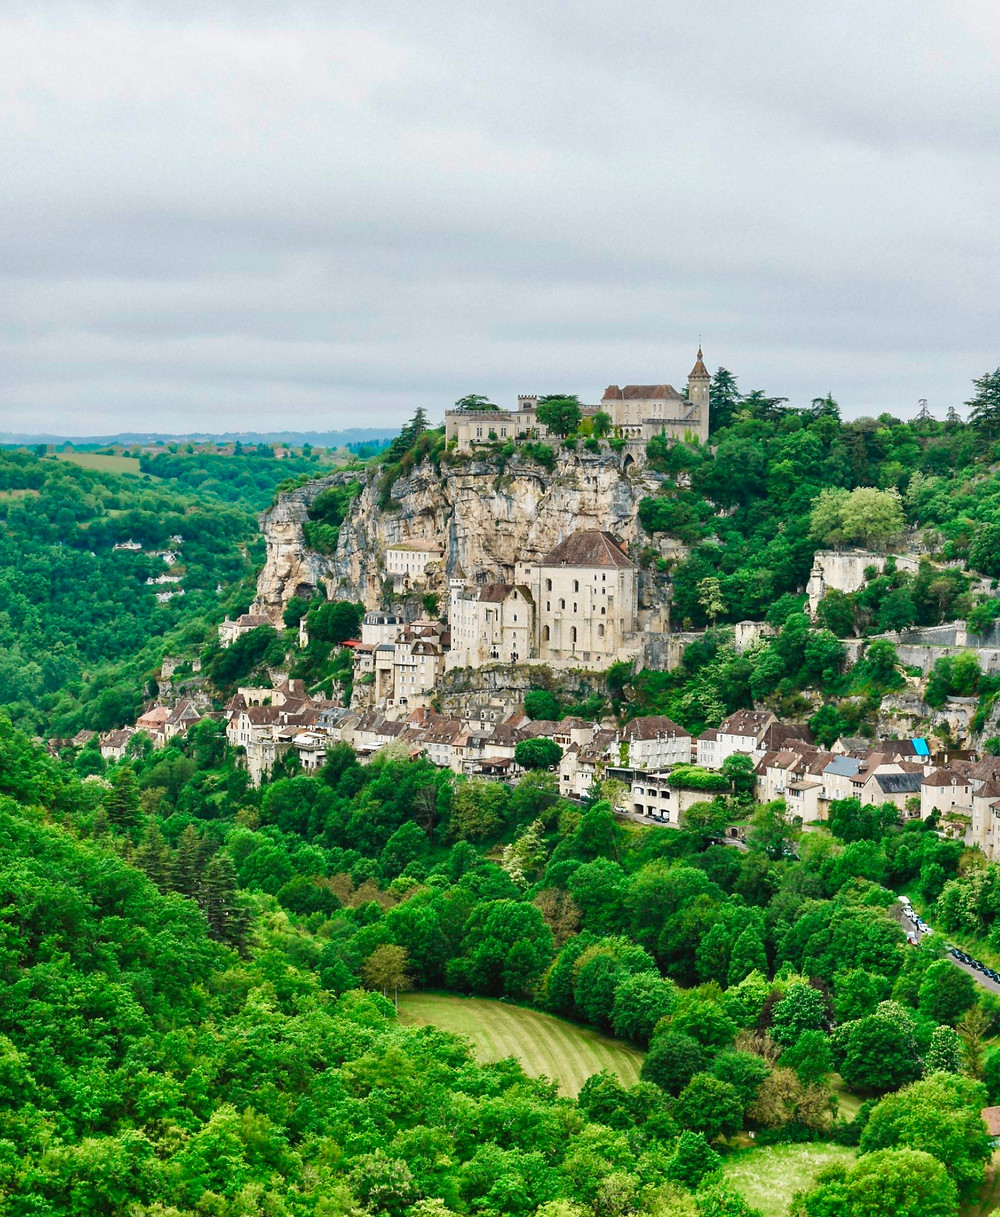 dramatic setting of Rocamadour France